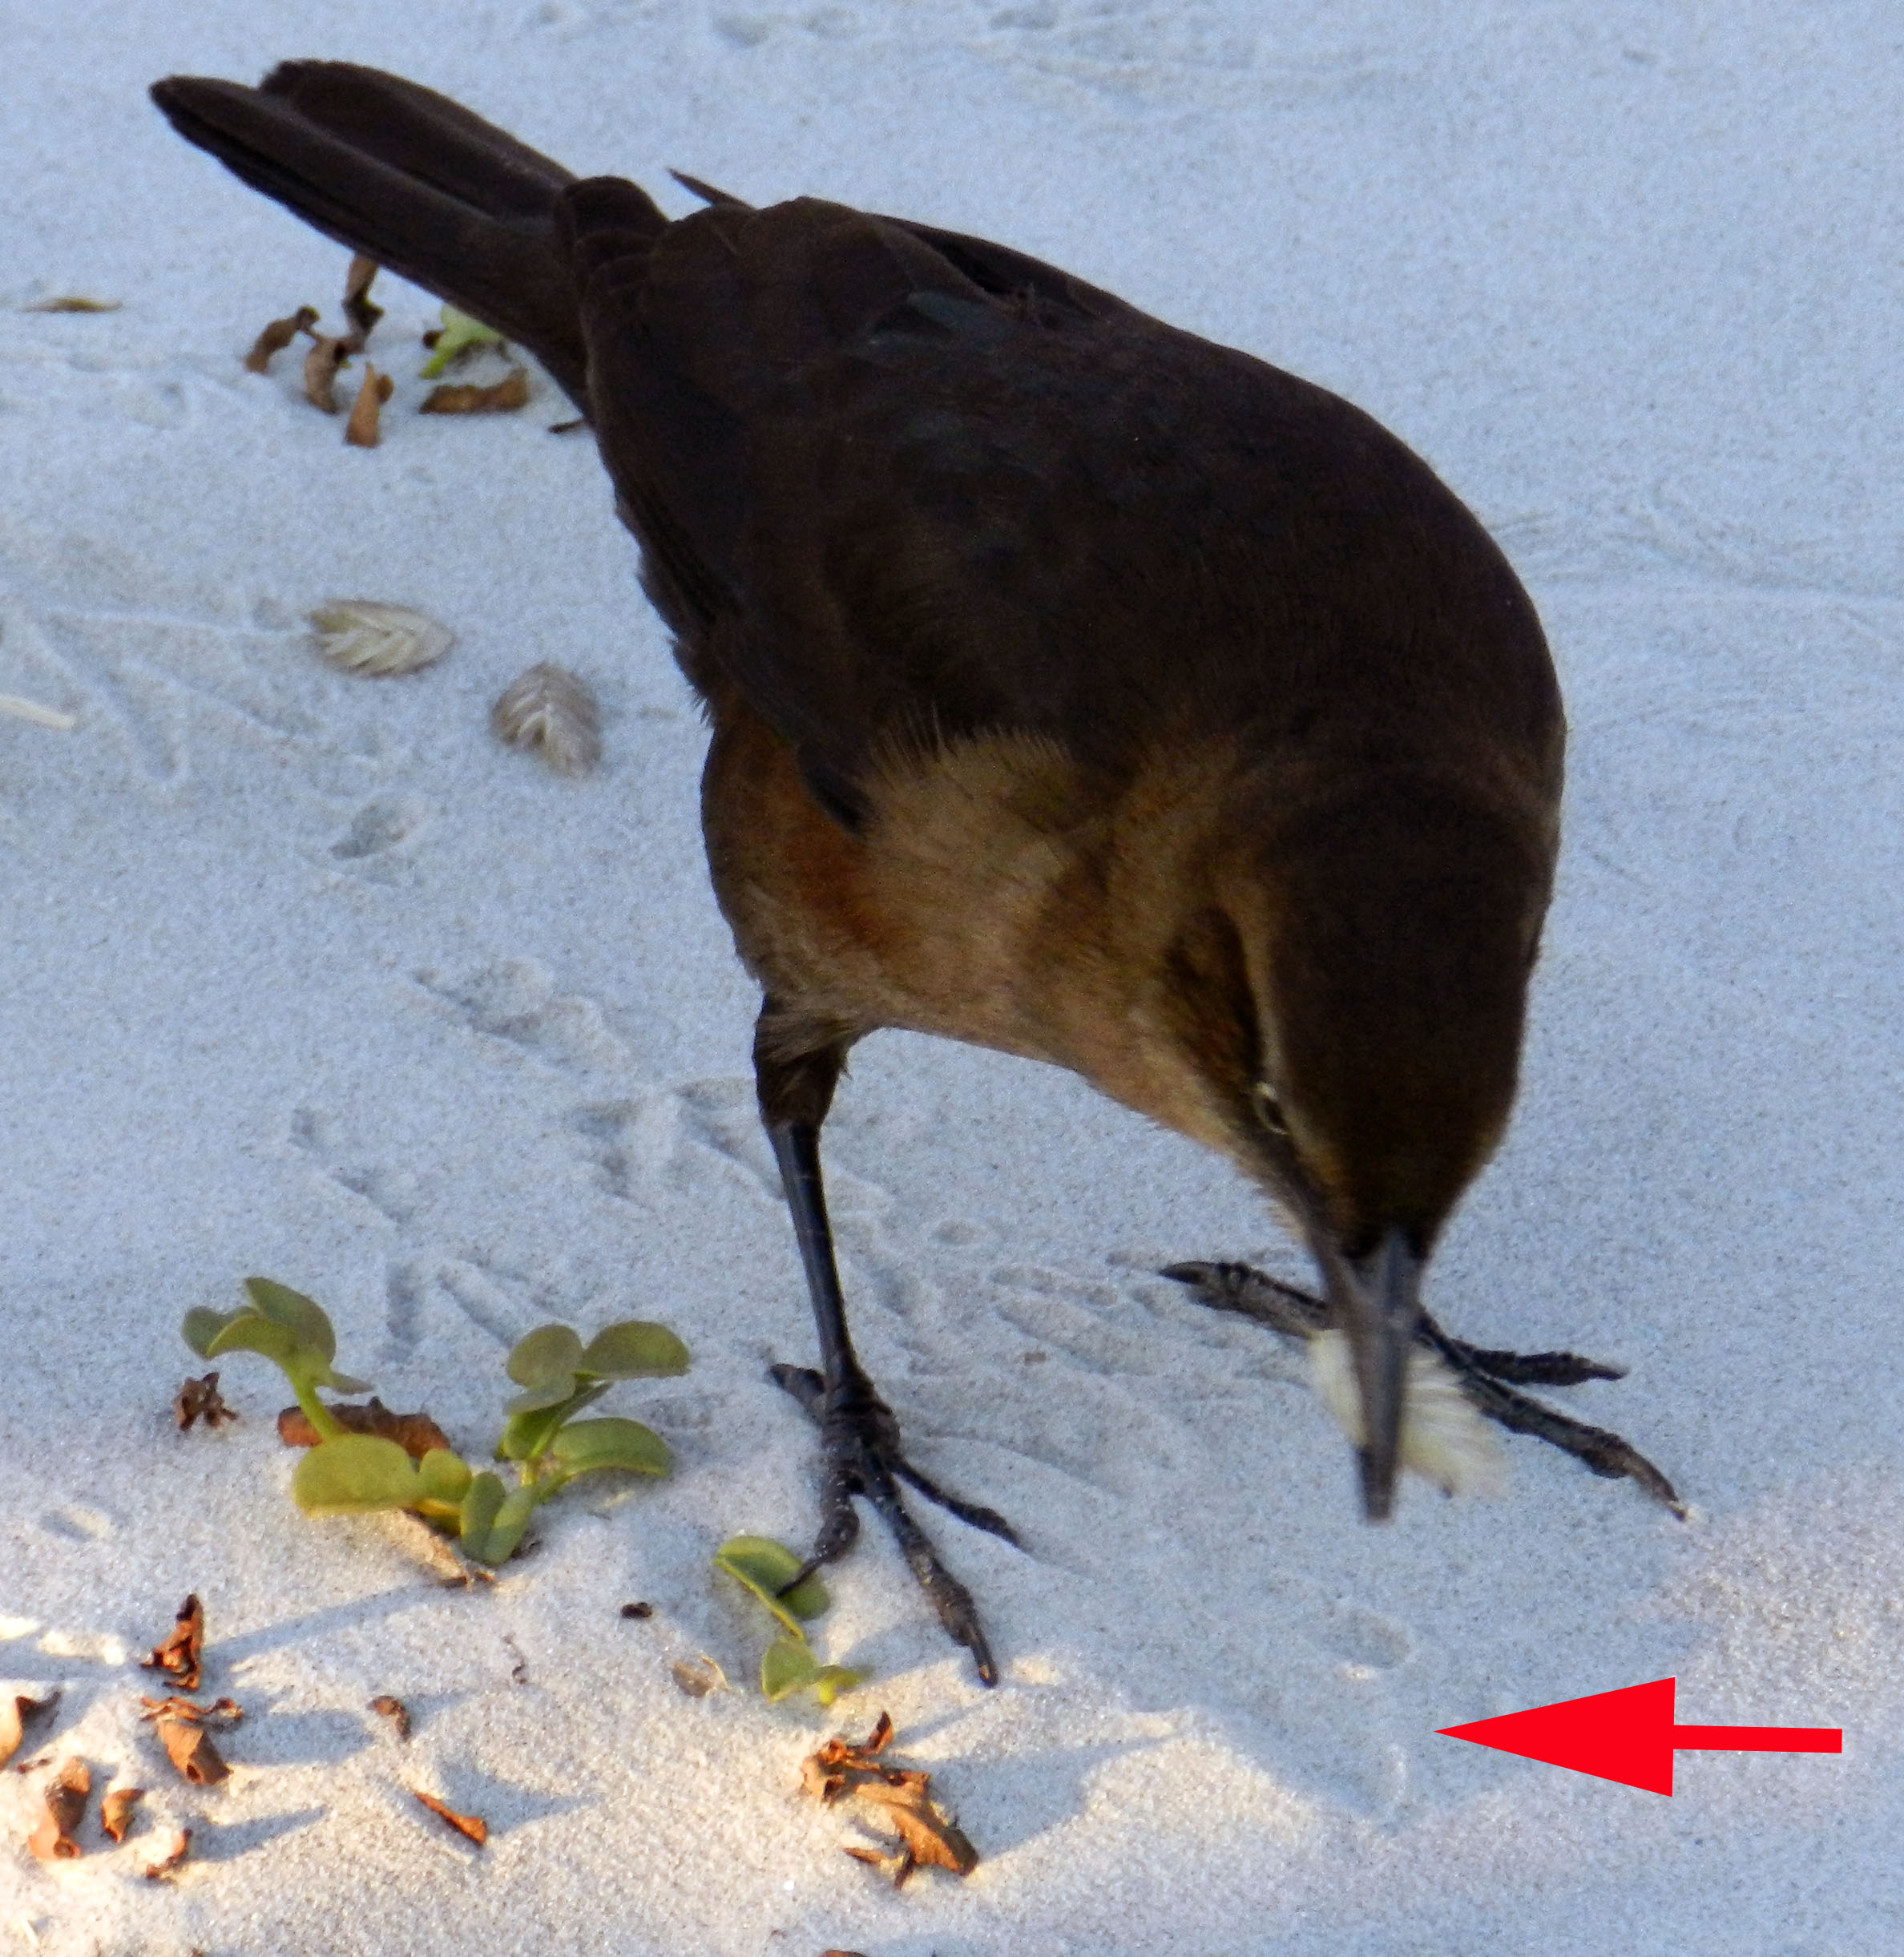 Boat-tailed-grackle-sea-oat-in-beak-closeup-trace-Tybee